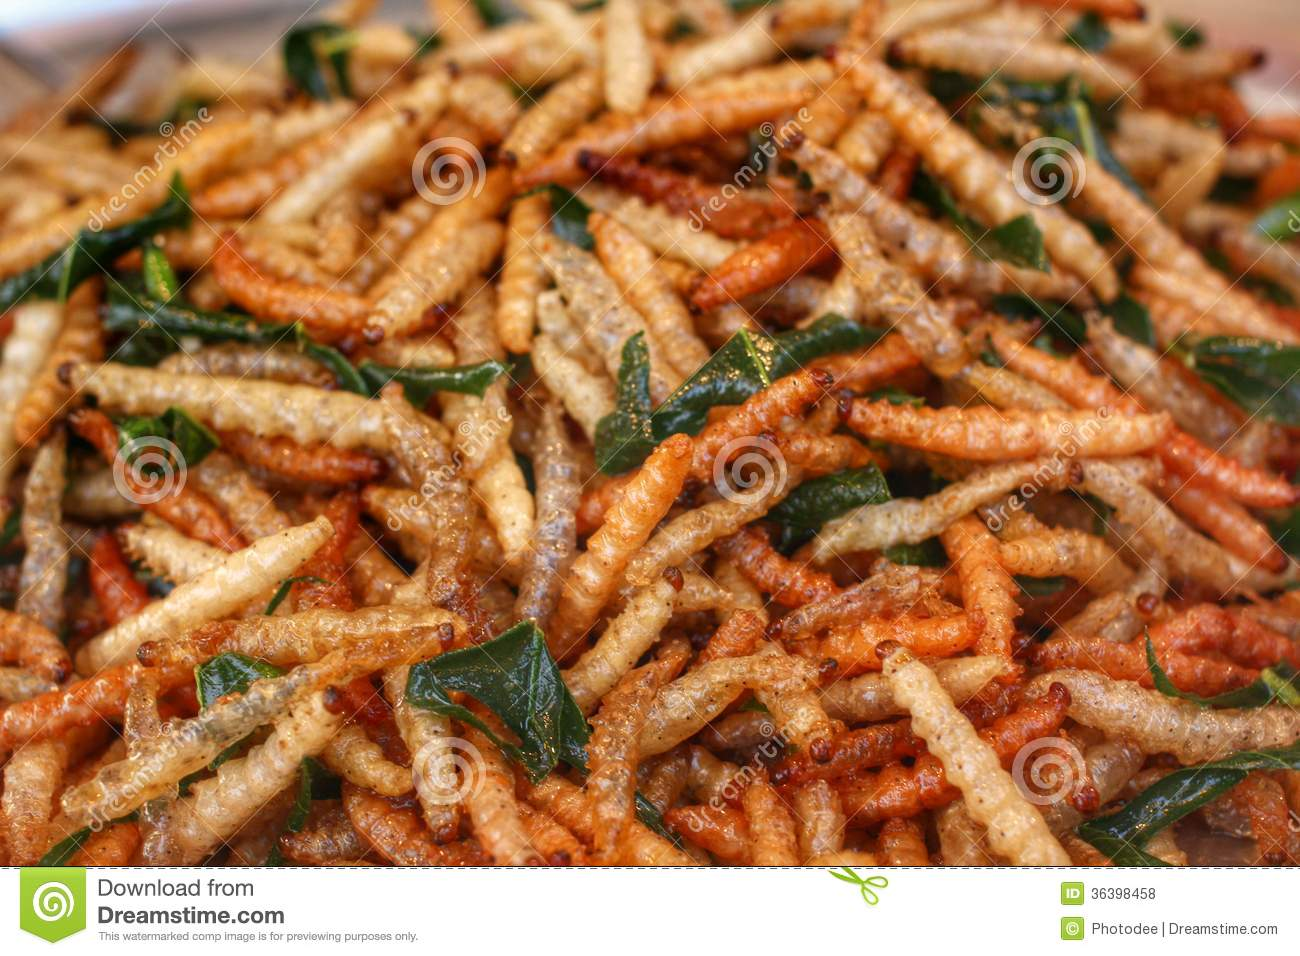 how to eat fried worms free online